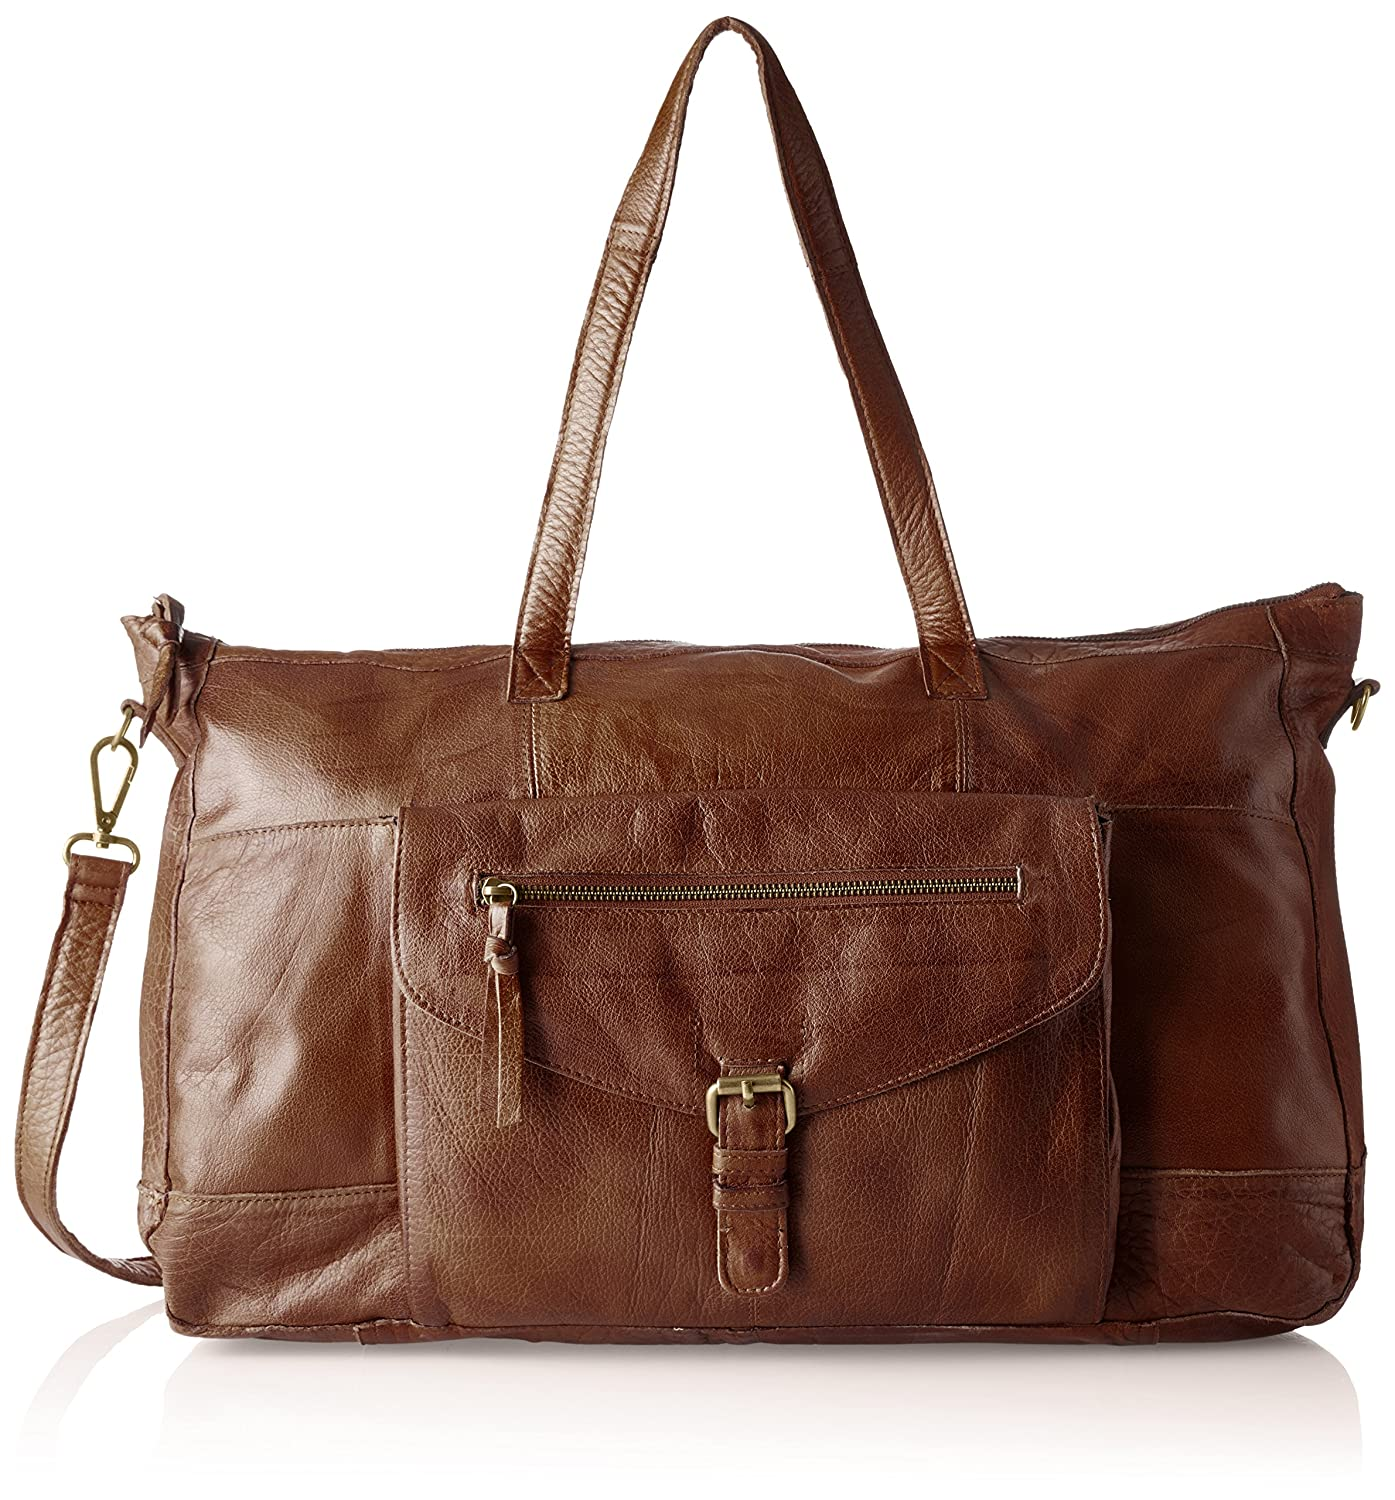 TOTALLY ROYAL LEATHER SMALL BAG NOOS 17055351 Damen Schultertaschen 32x20x12 cm (B x H x T), Braun (Cognac) Pieces